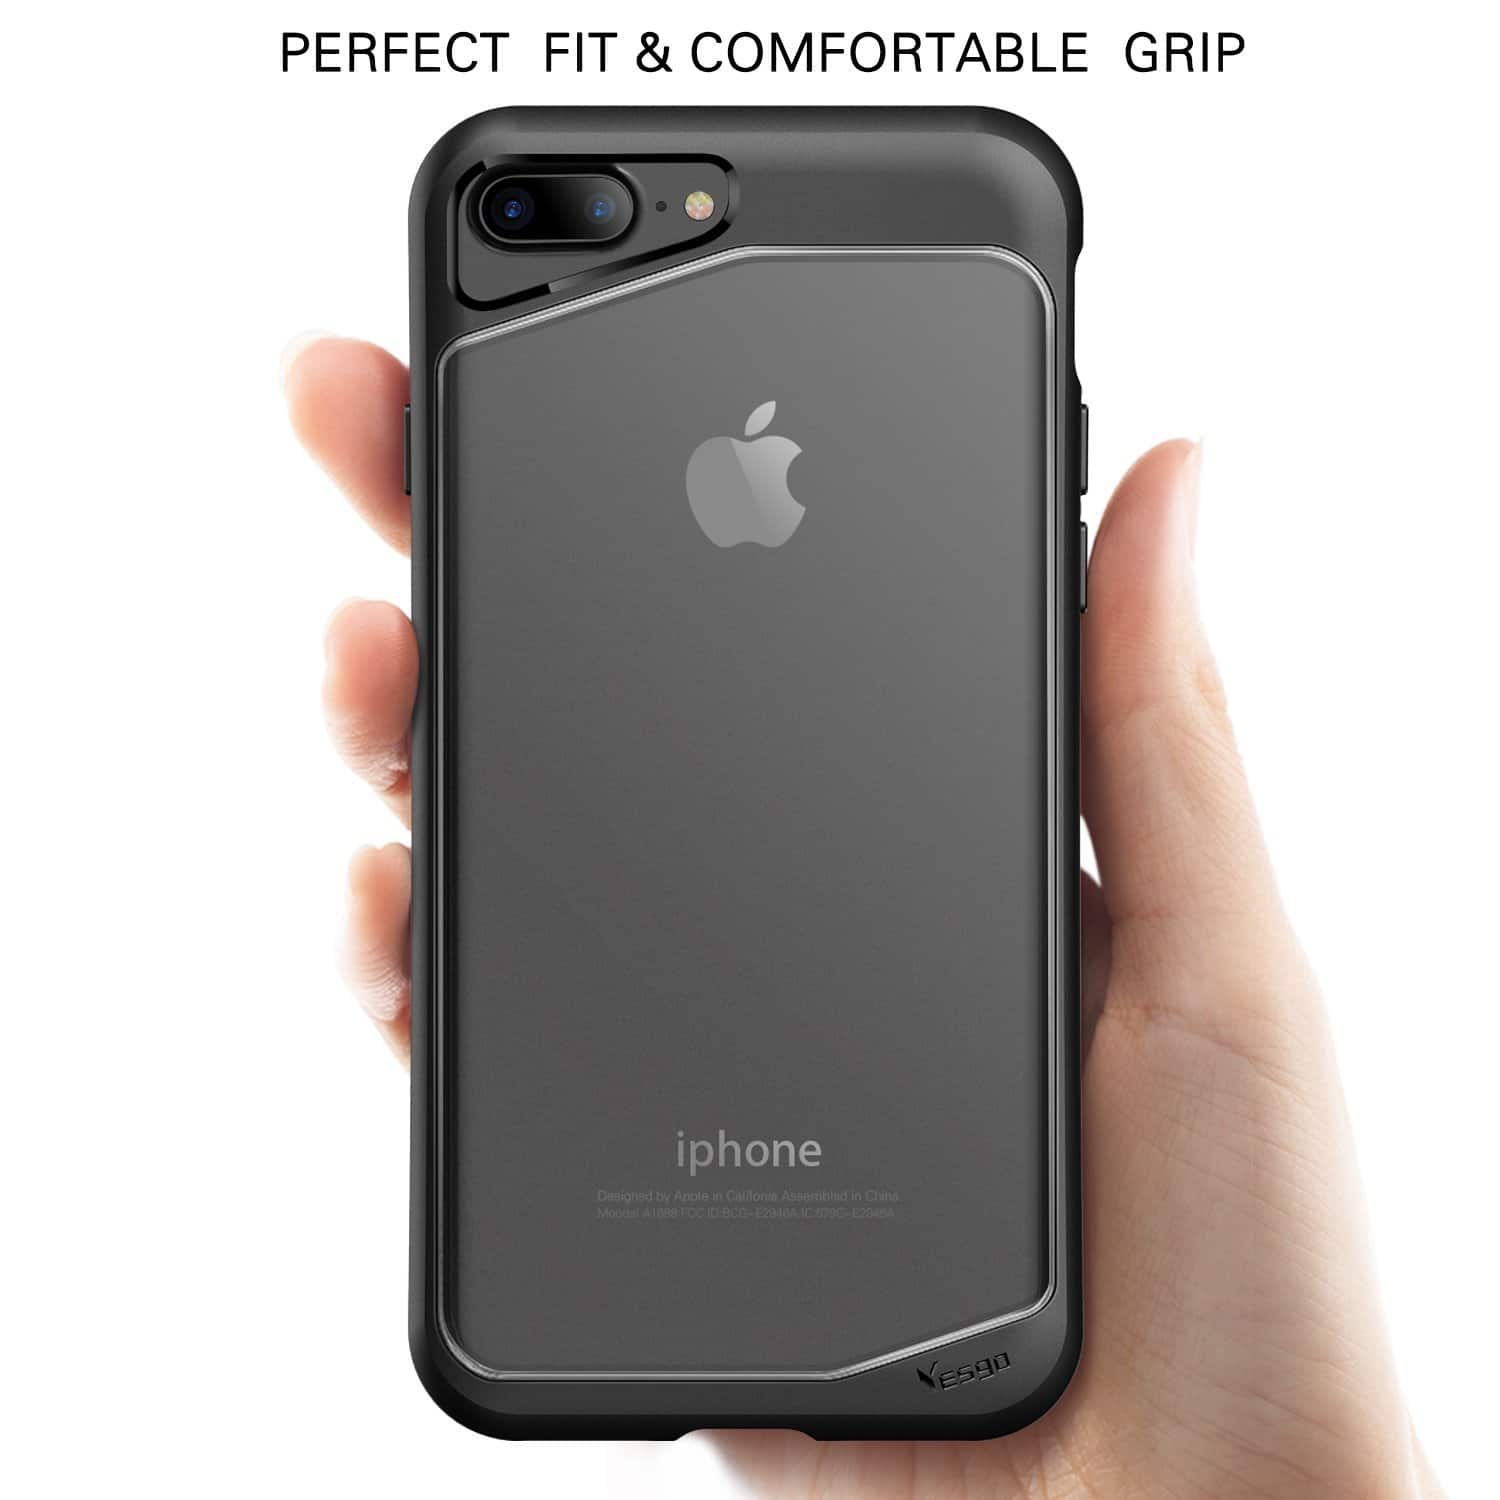 iPhone 7 Plus Slim Clear Case in Black Shockproof & Water Resistant Anti-Scratch for $1.99 w/ possible FS @ Amazon